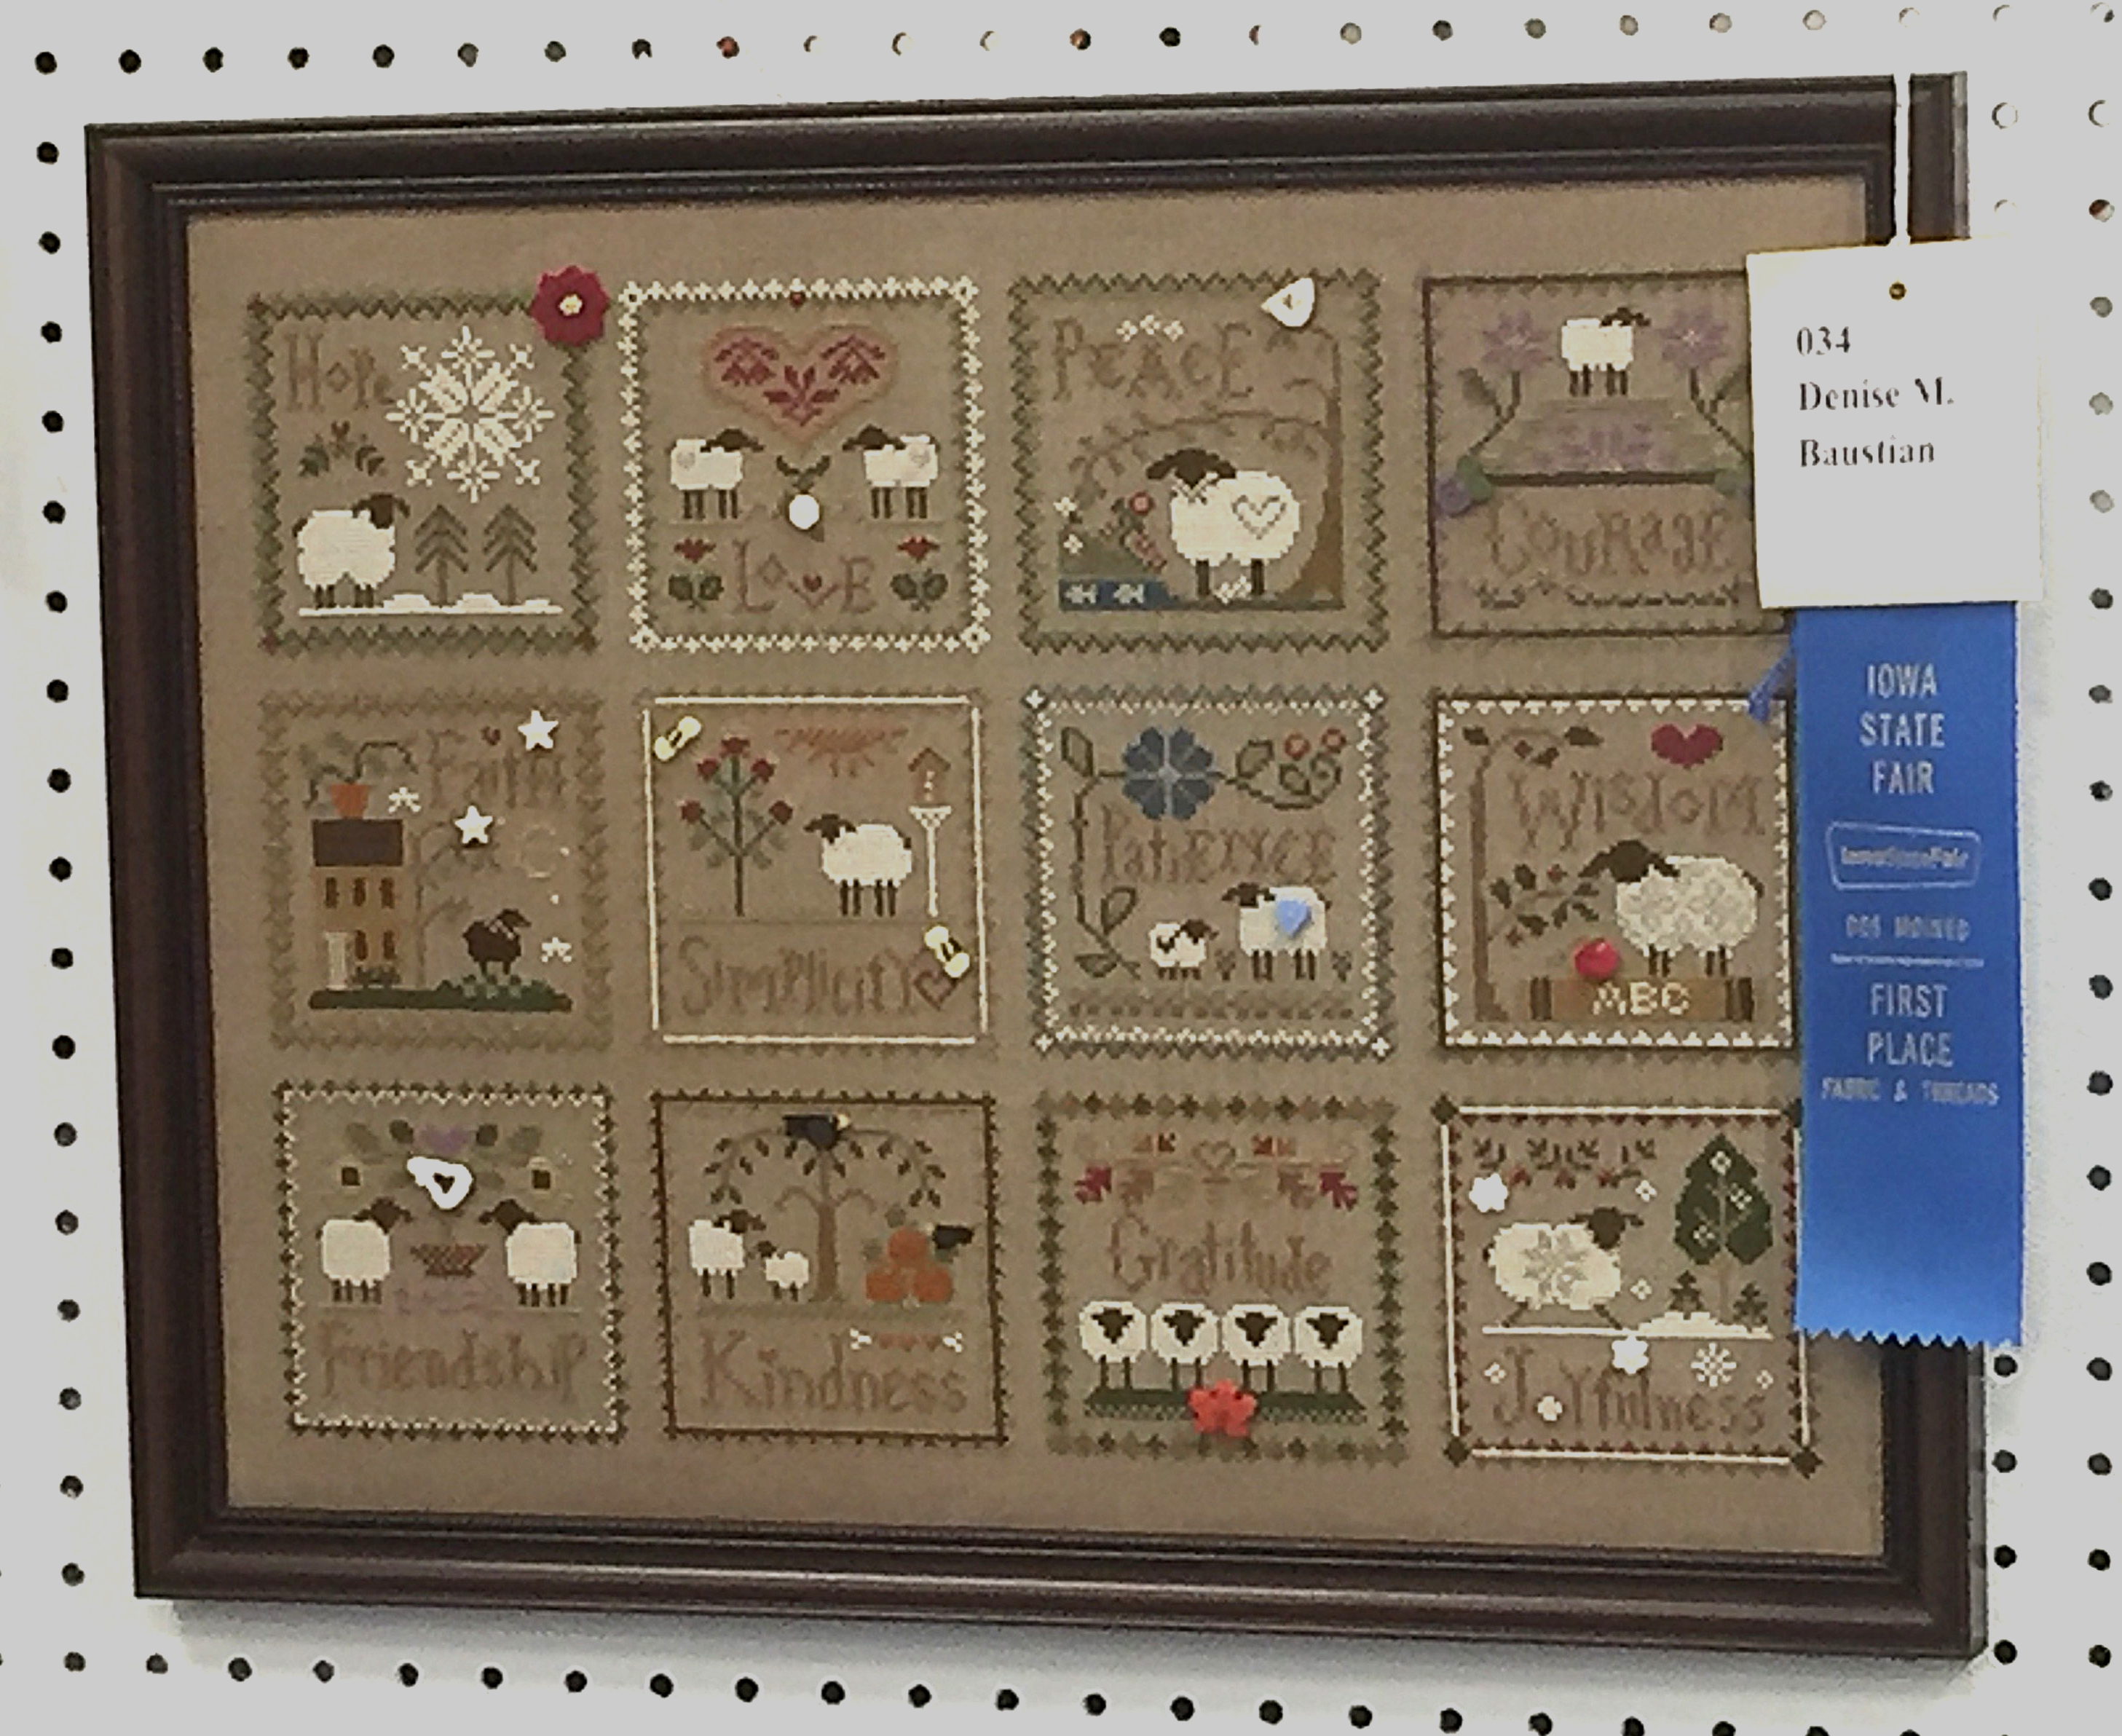 I wish this photo had better resolution, but it was taken quite a distance away with my iPhone. Still, it represents the kind of cross stitch I enjoy doing myself--counted cross stitch on linen. 1st Place - Denise M. Baustian.